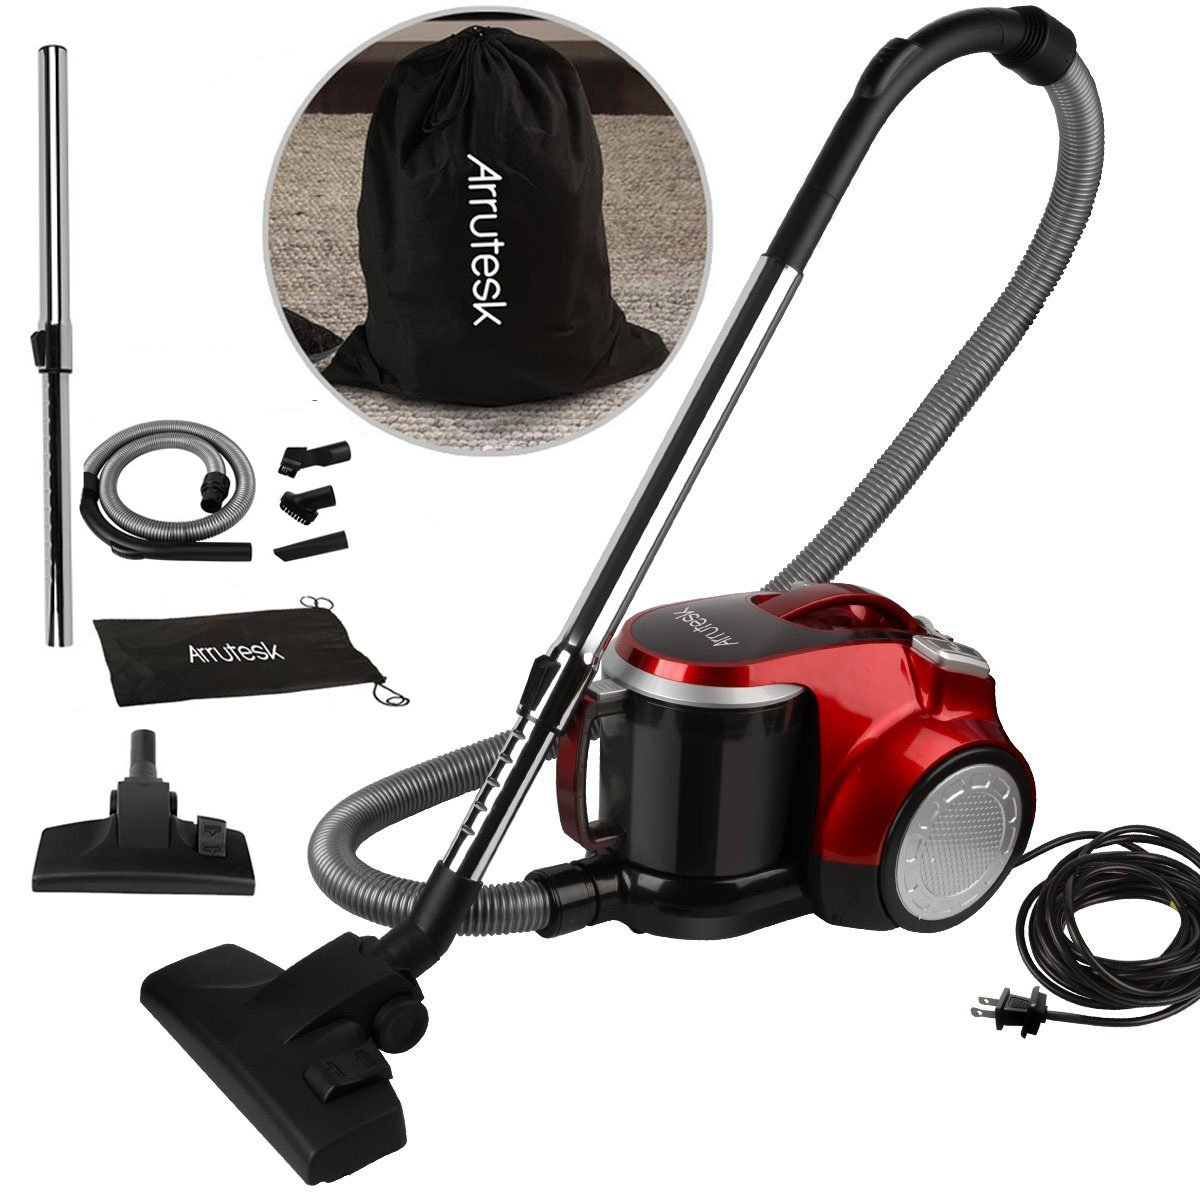 Arrutesk Upright Cyclonic Vacuum Cleaner, Household Multi-Cyclonic Bagless Canister Vacuum, 700W 15-17KPA Suction with Storage Bag (Pccbie US 629)